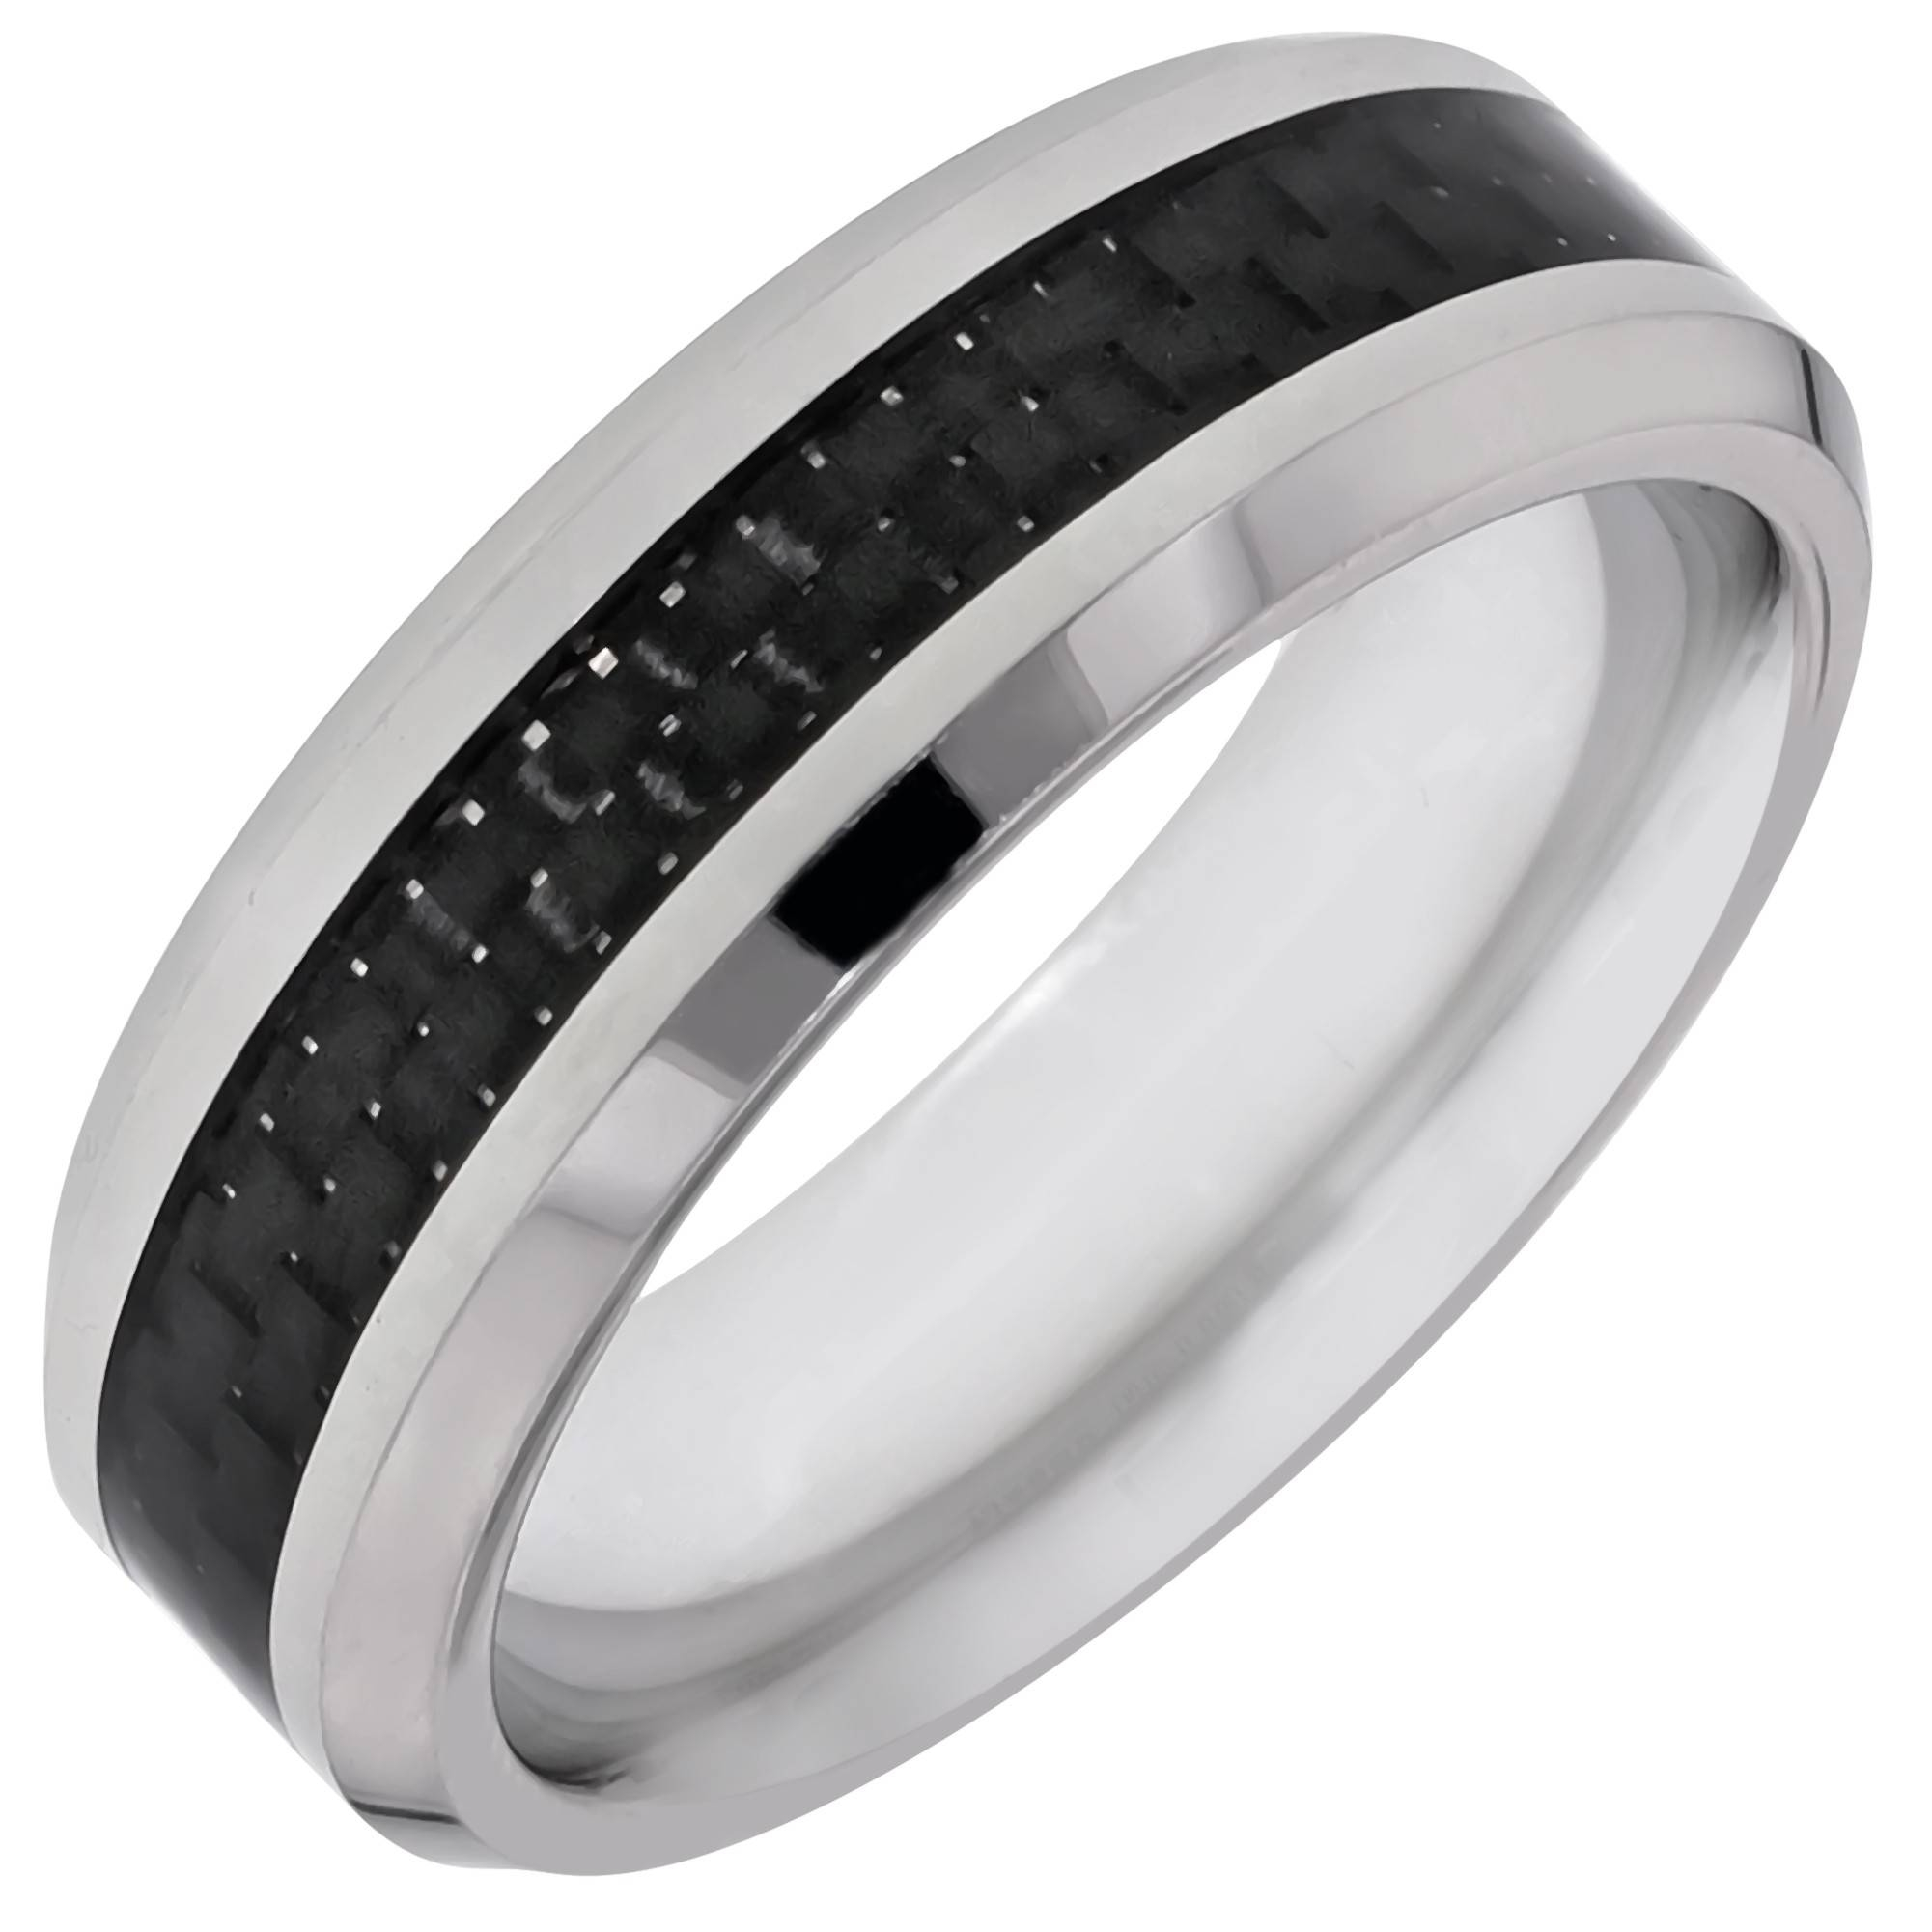 Mens Cobalt Chrome And Carbon Fiber Comfort Fit Wedding Band (7Mm) Regarding 7Mm Titanium Wedding Bands (Gallery 13 of 15)